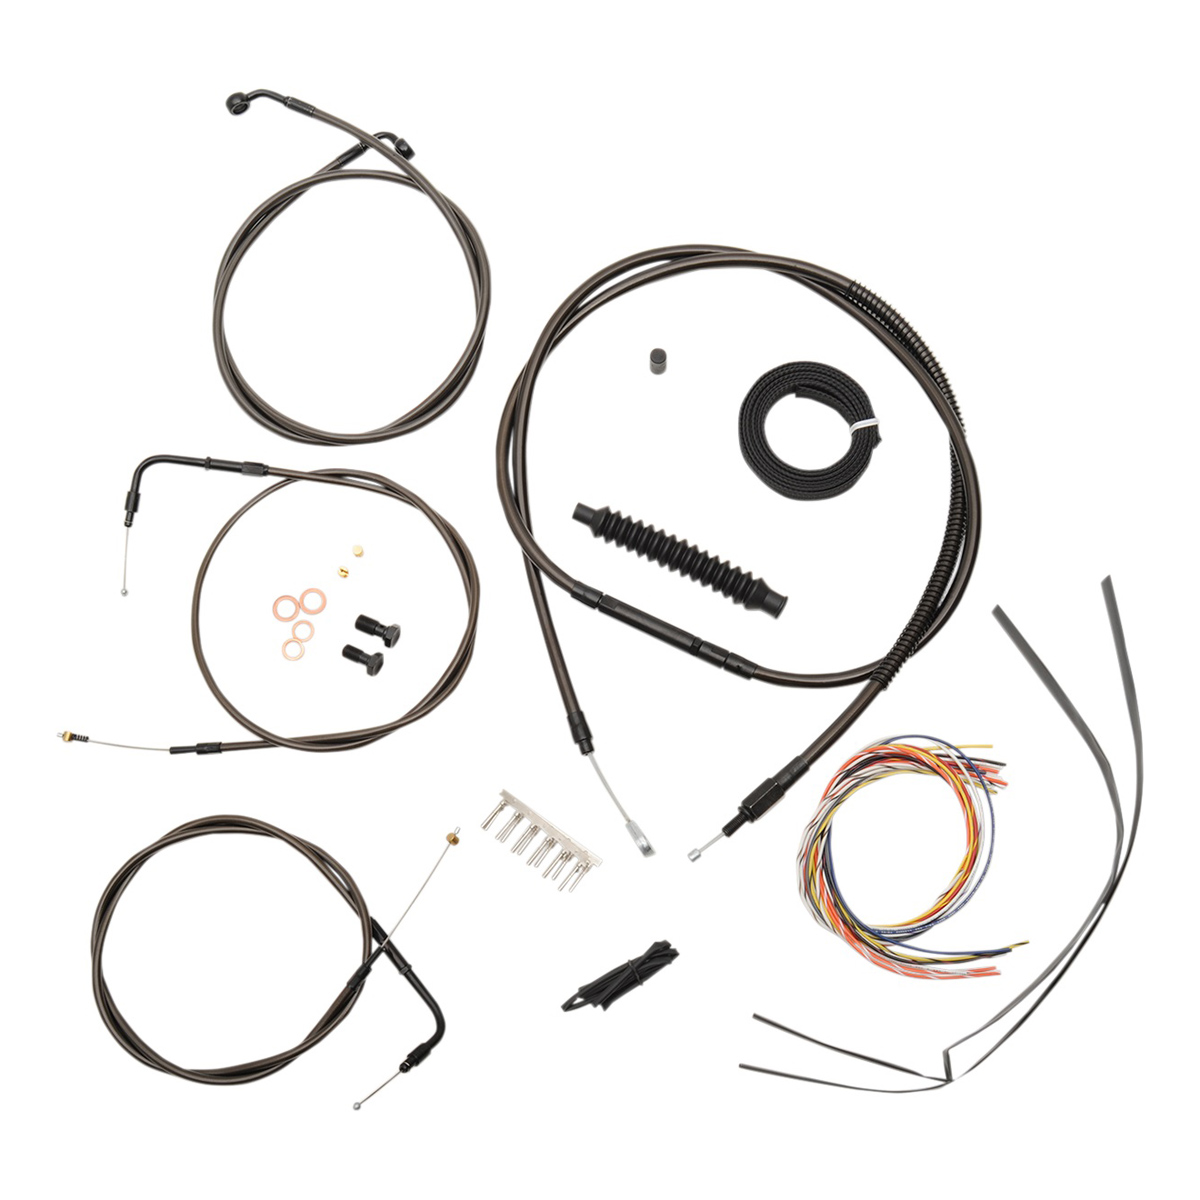 LA Choppers Midnight Complete Cable/Line/Wiring Handlebar Kit for 15″-17″ Bars on Models without ABS